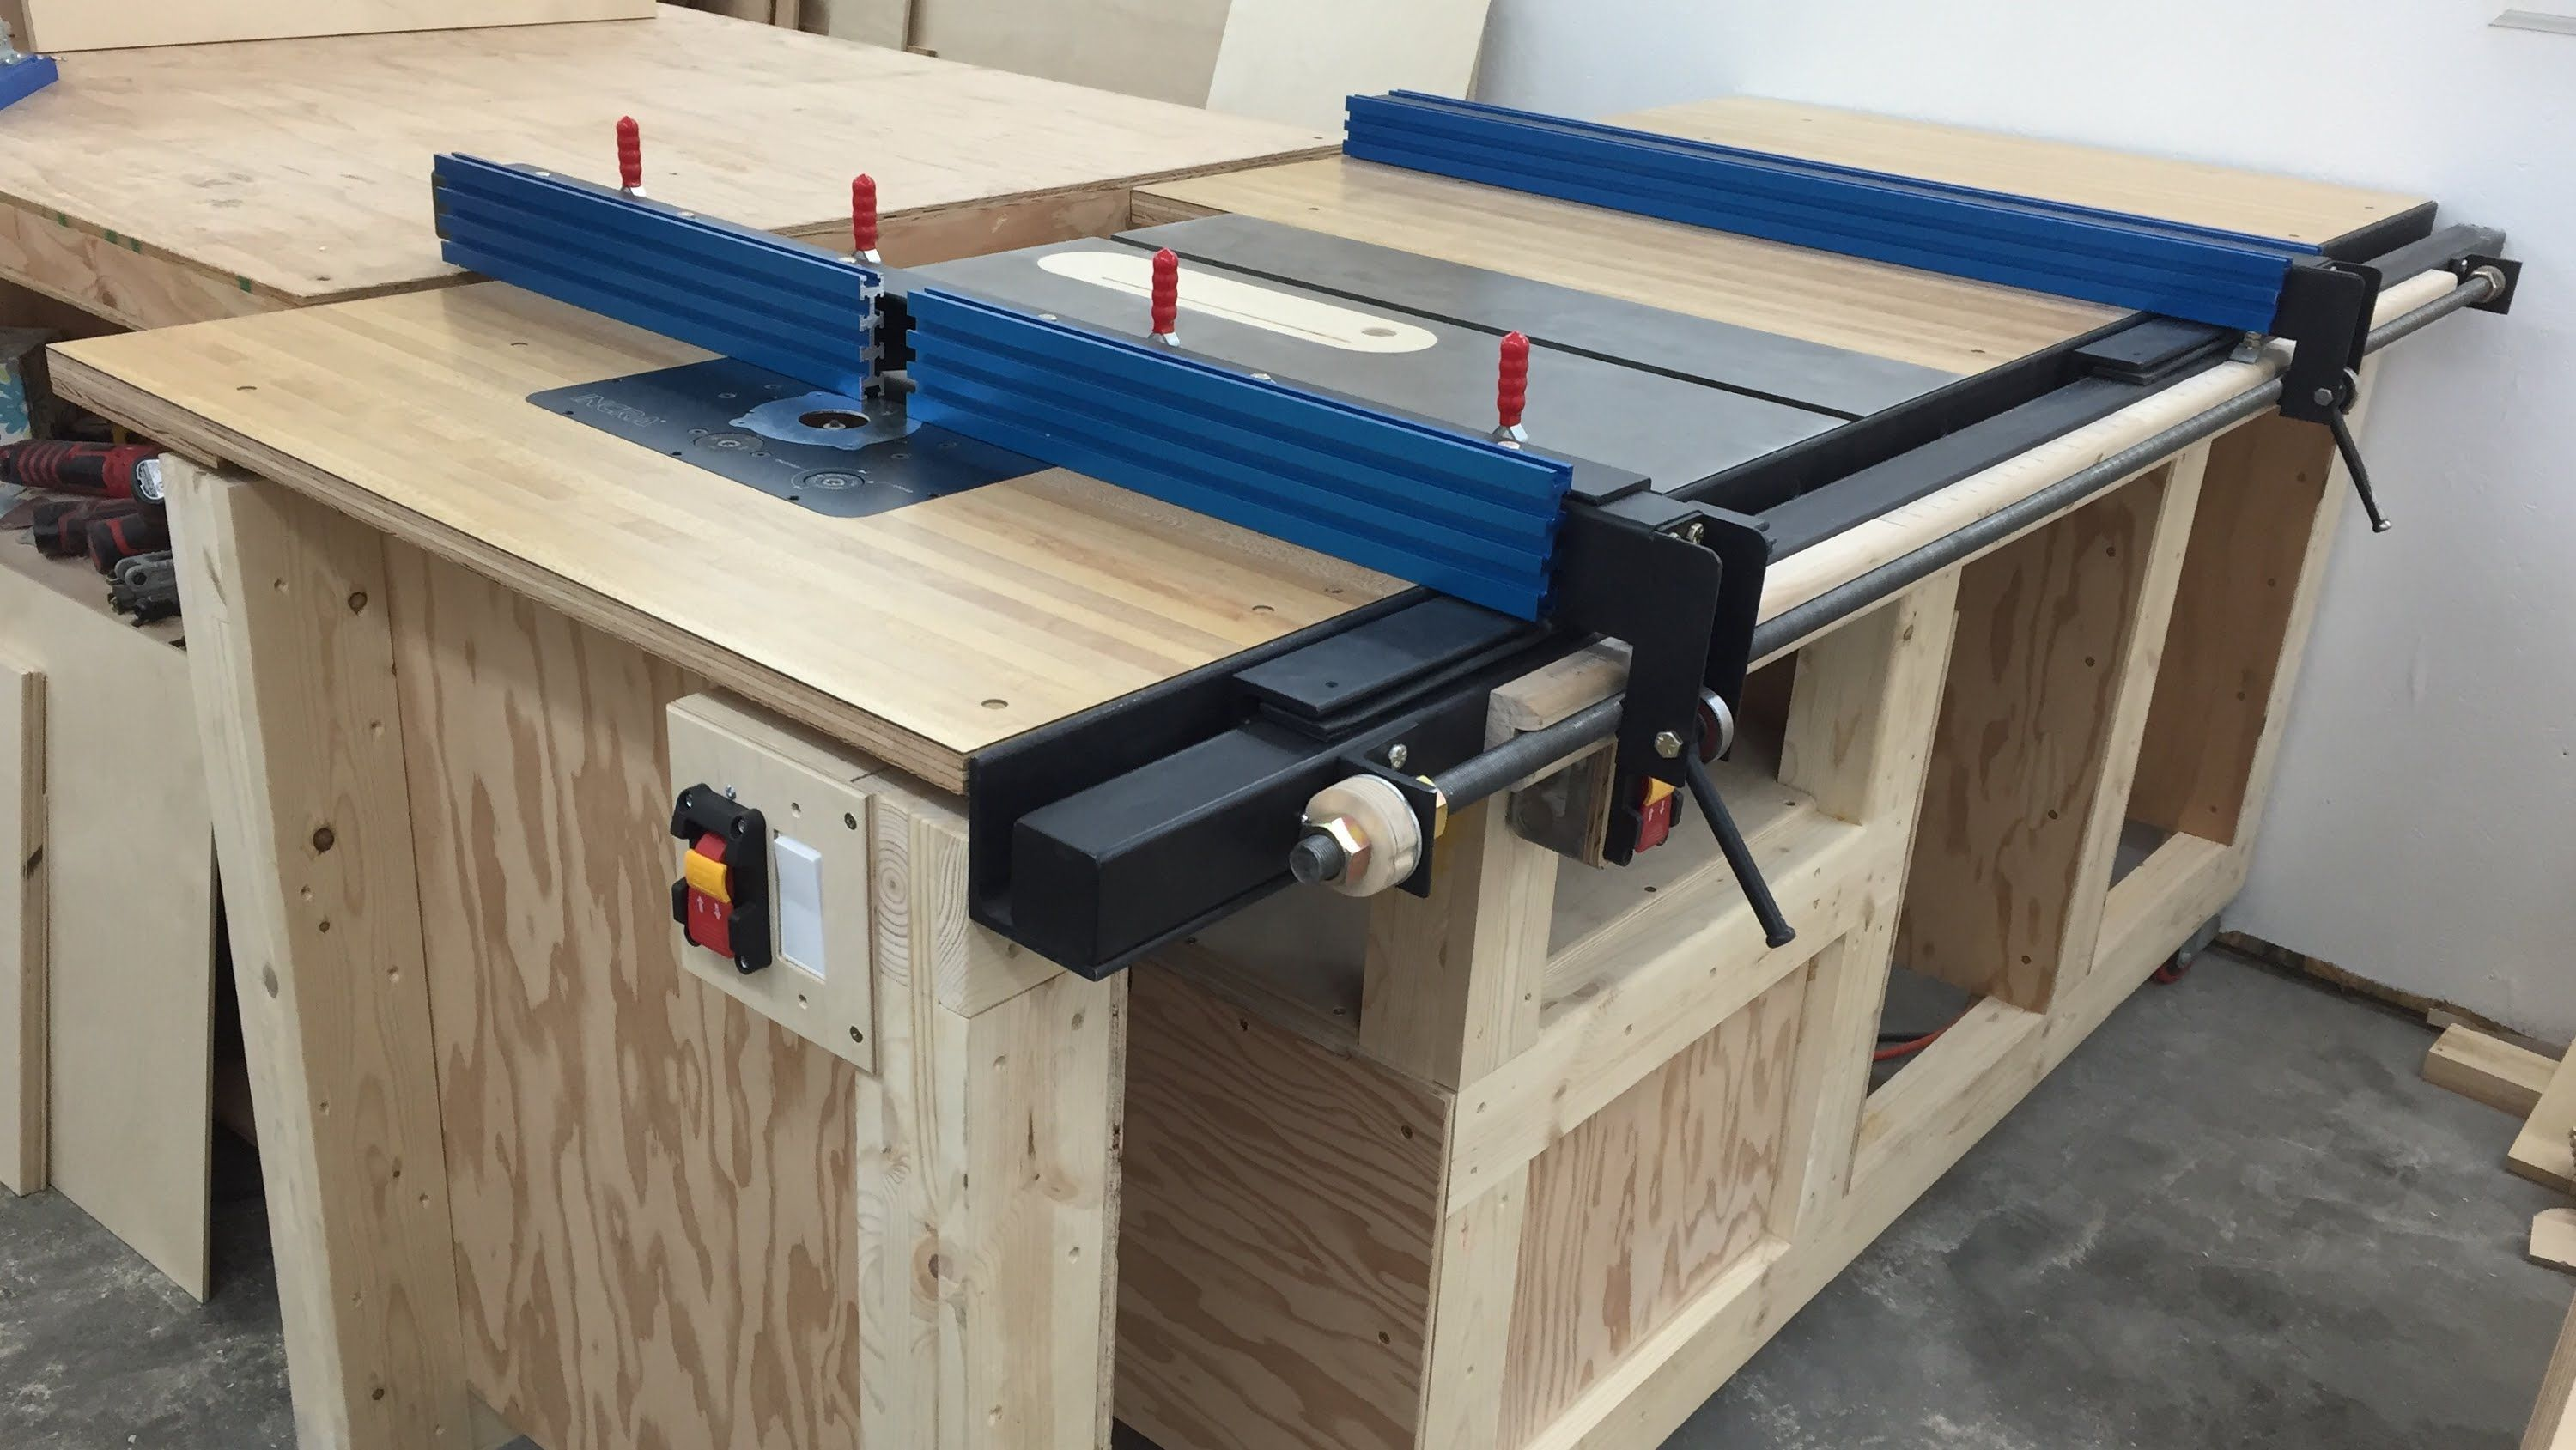 An Overview Of My Table Saw Station Since I Got So Many Questions